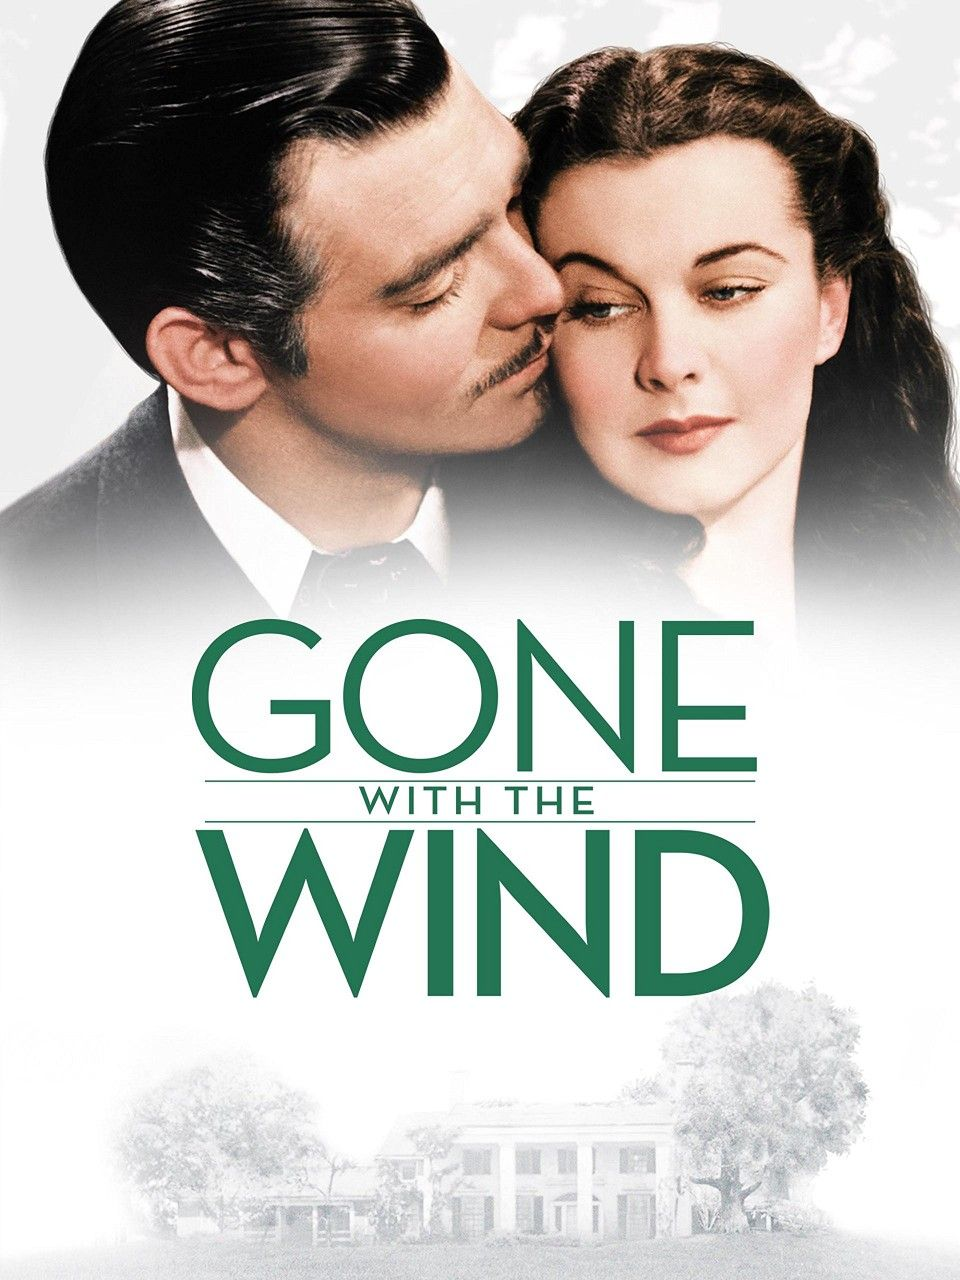 Pin by RB on BooksFilmsSeries Wind movie, Gone with the